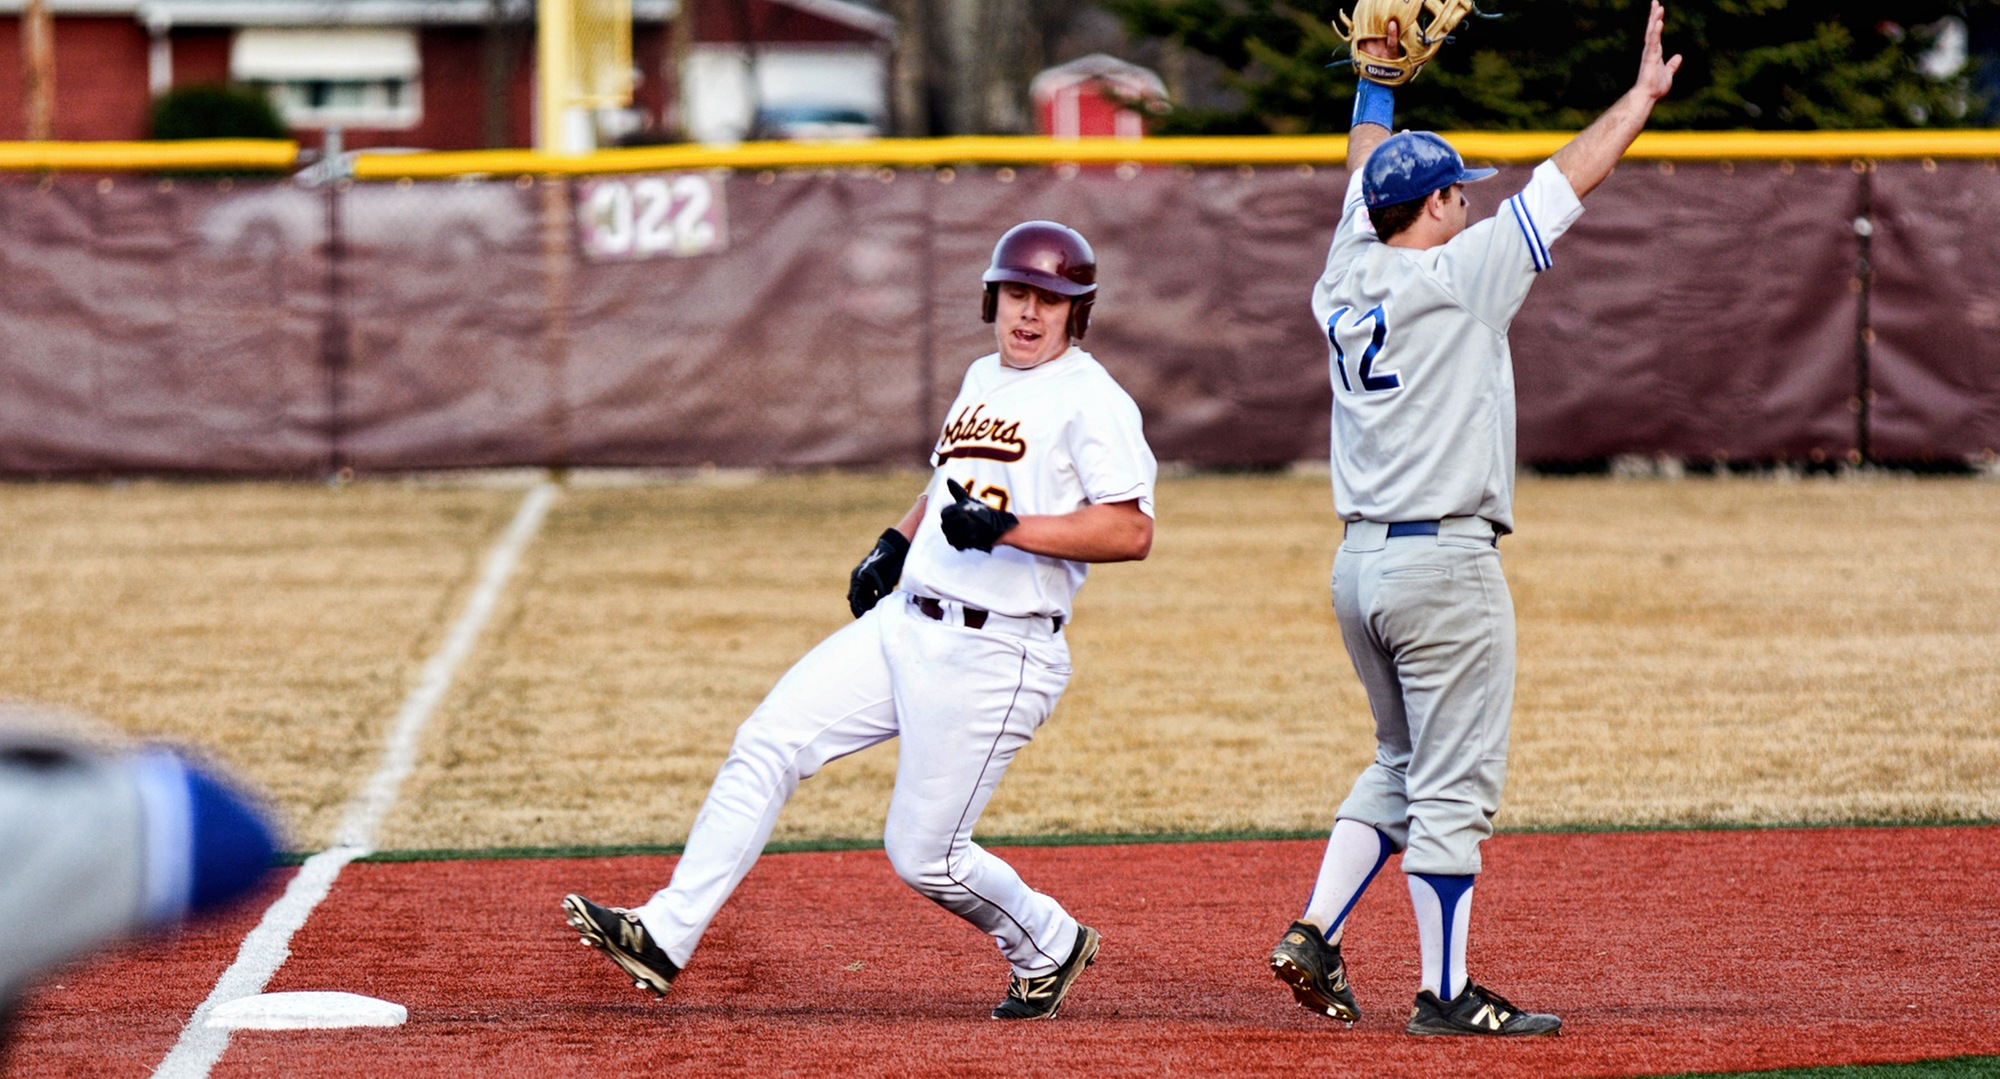 Junior Nate Leintz glides into third base in the 10th inning of the Cobbers' home opener against Mayville State.